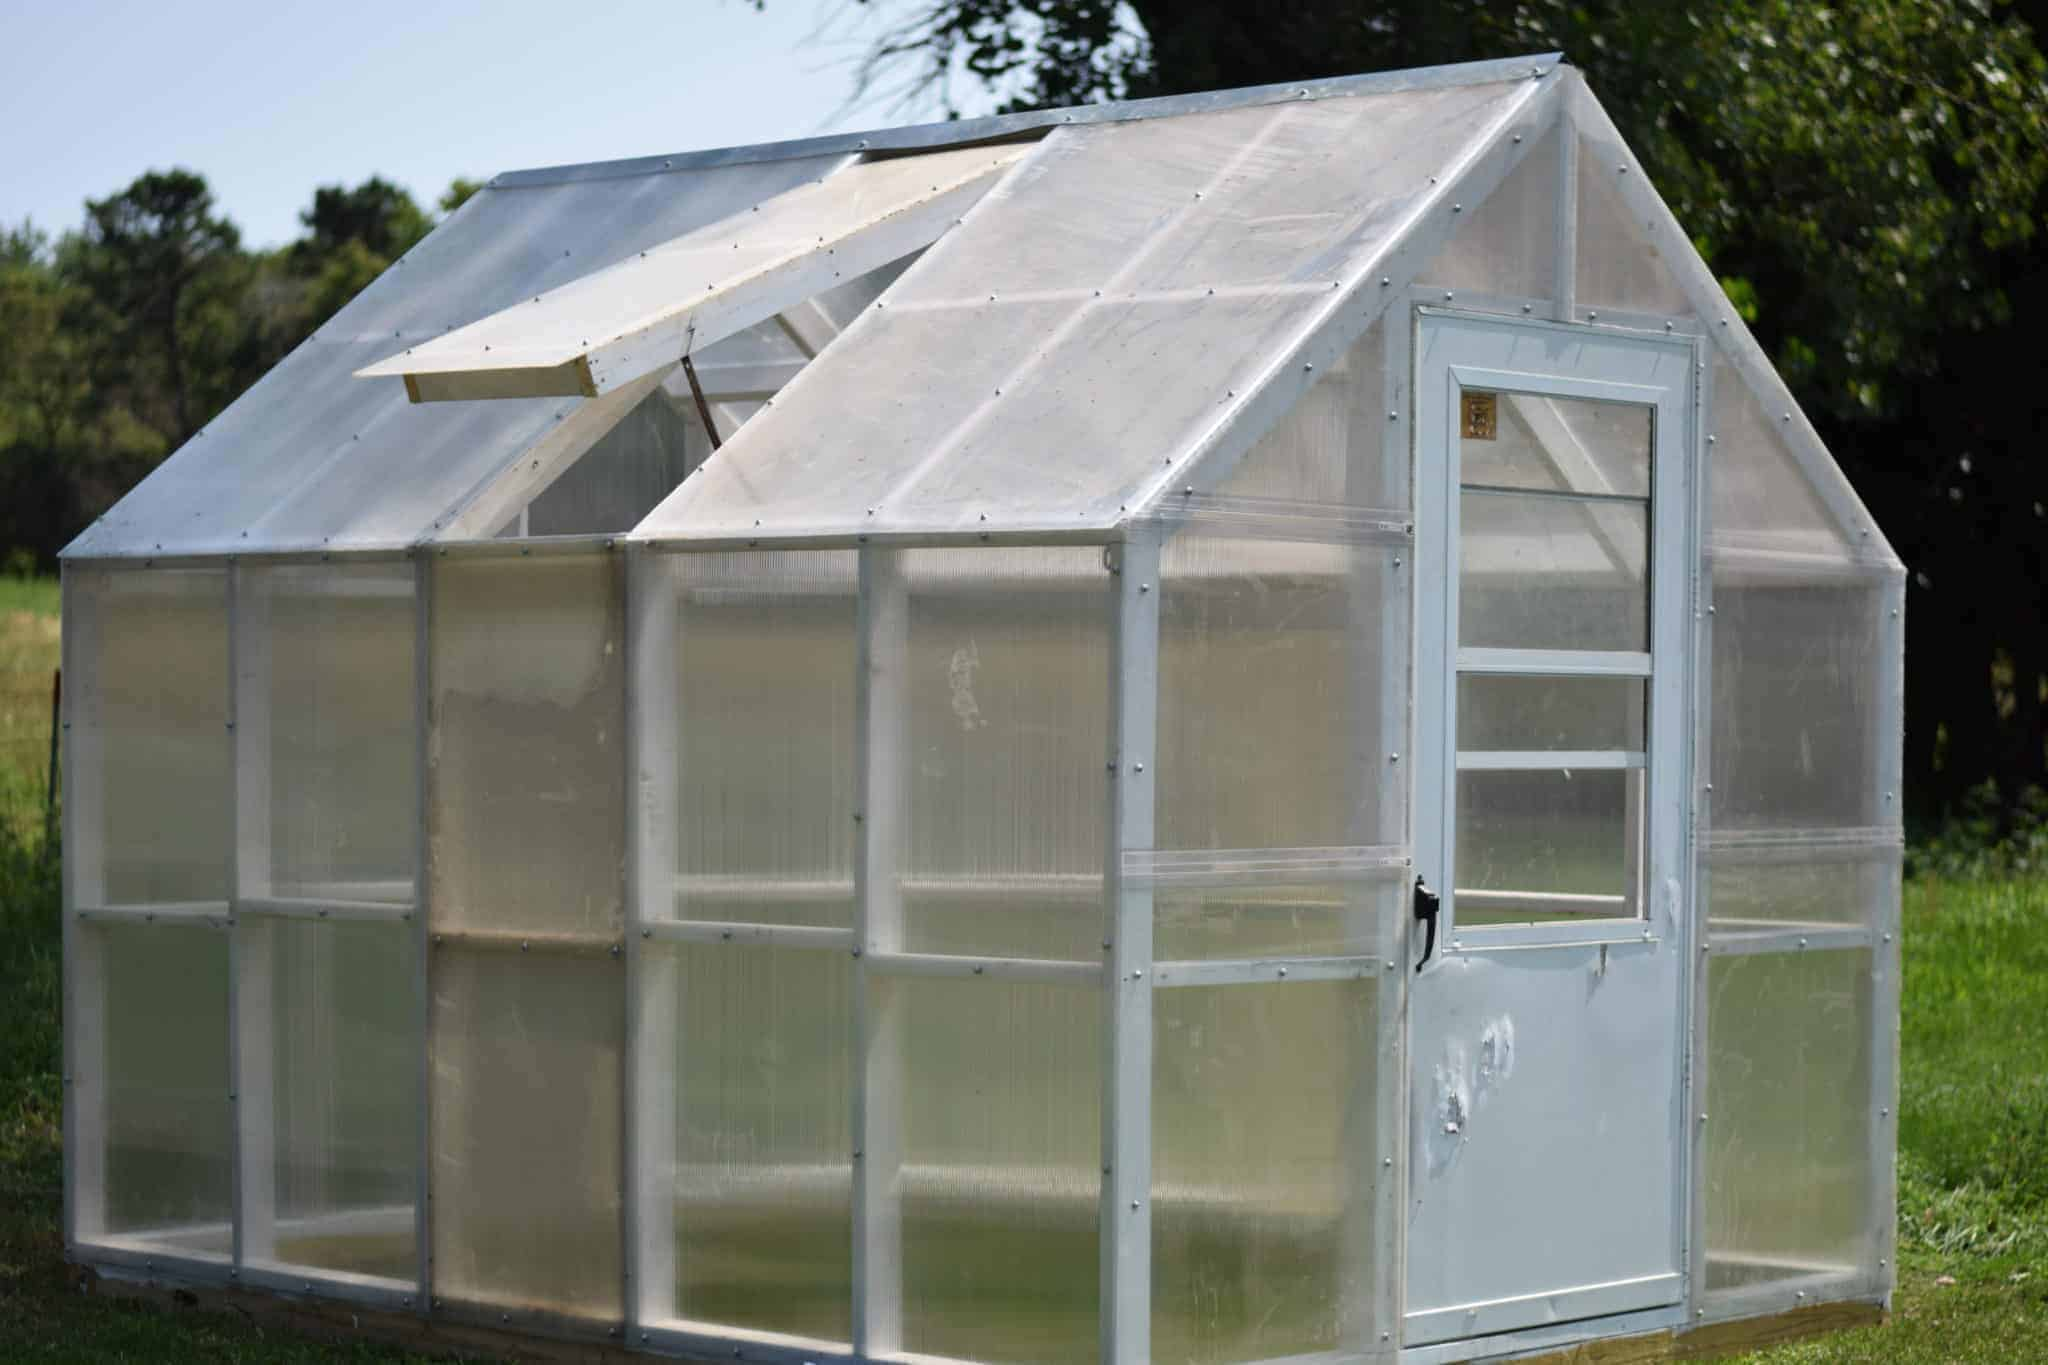 Finished greenhouse outside in the garden with one vent opened on side of roof.